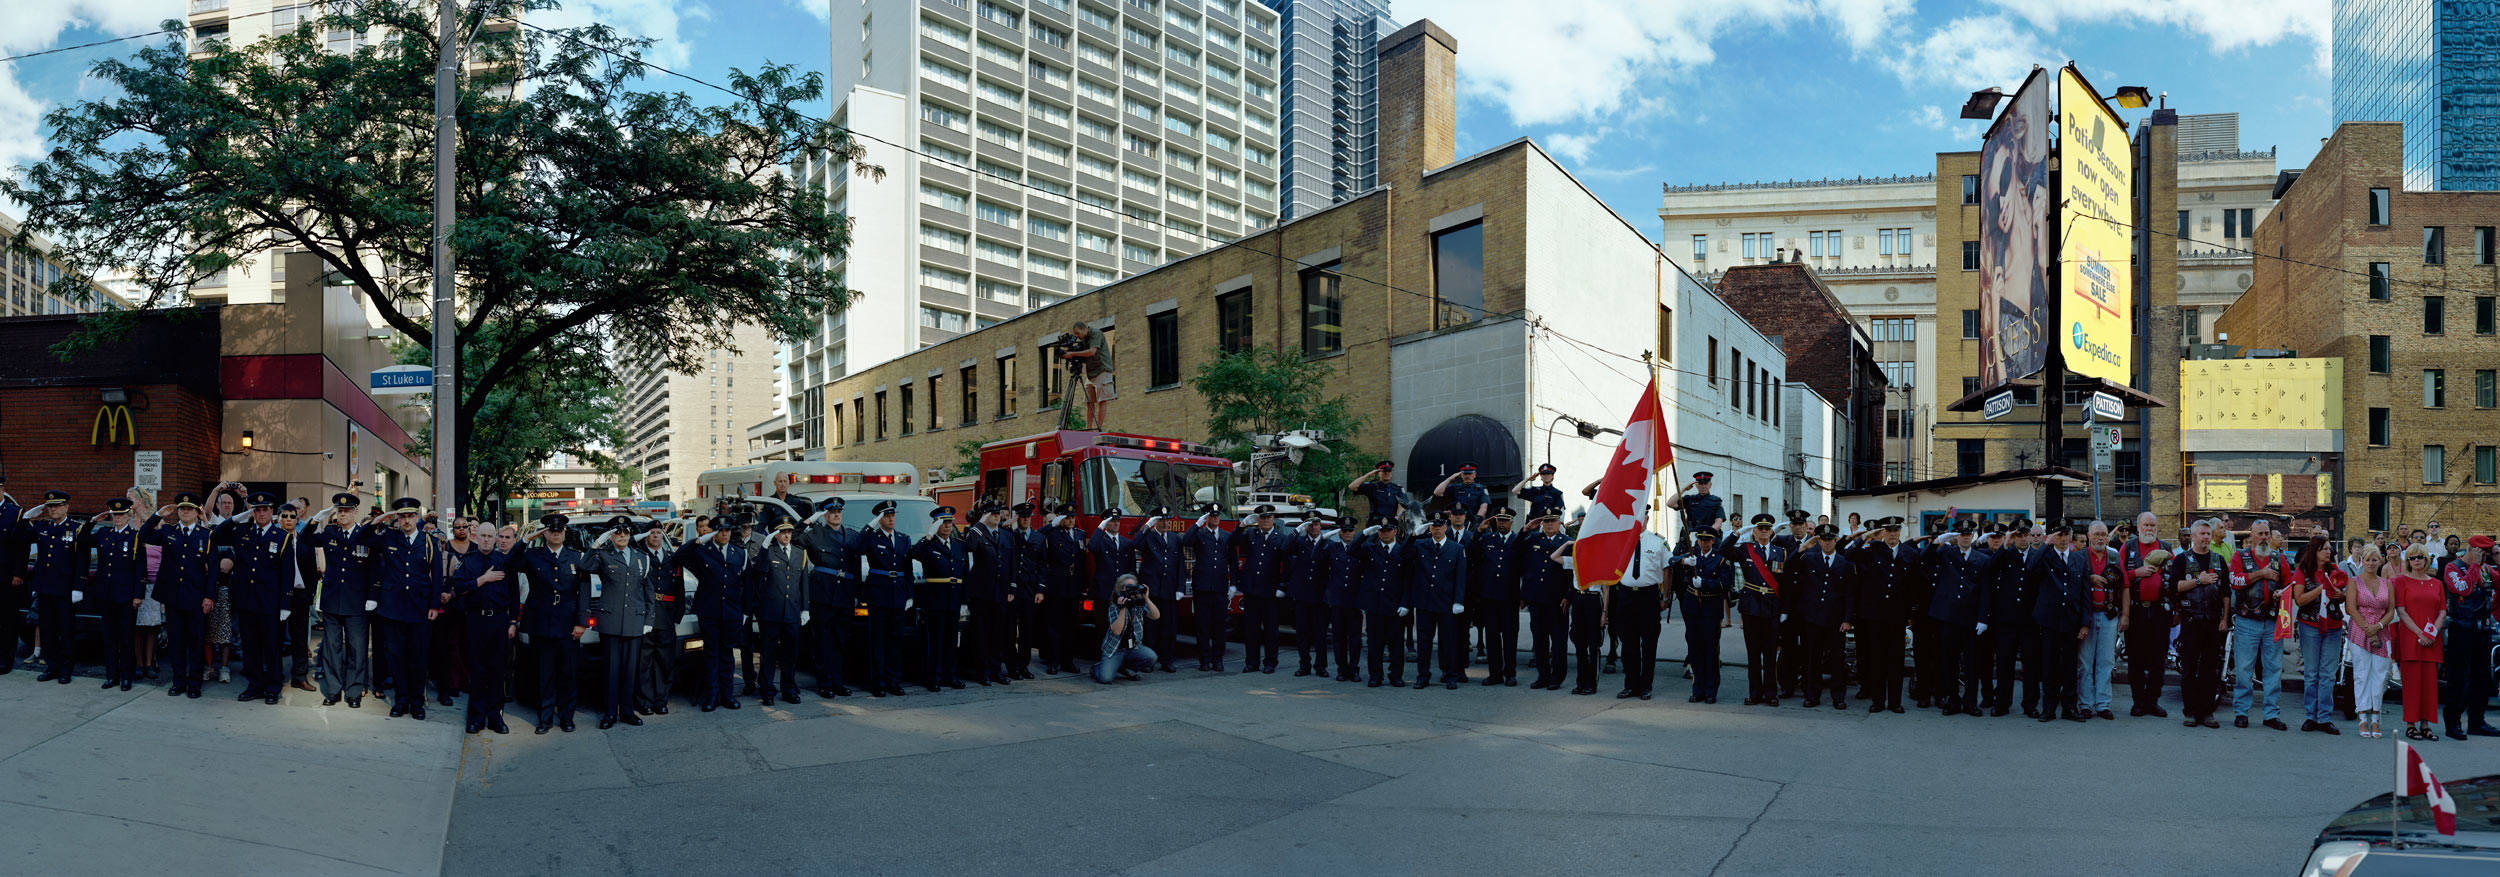 Corner of the Courageous, Repatriation Ceremony for Master Corporal Kristal and Private Andrew Miller, Grenville St., Toronto, Ontario, June 28, 2010.